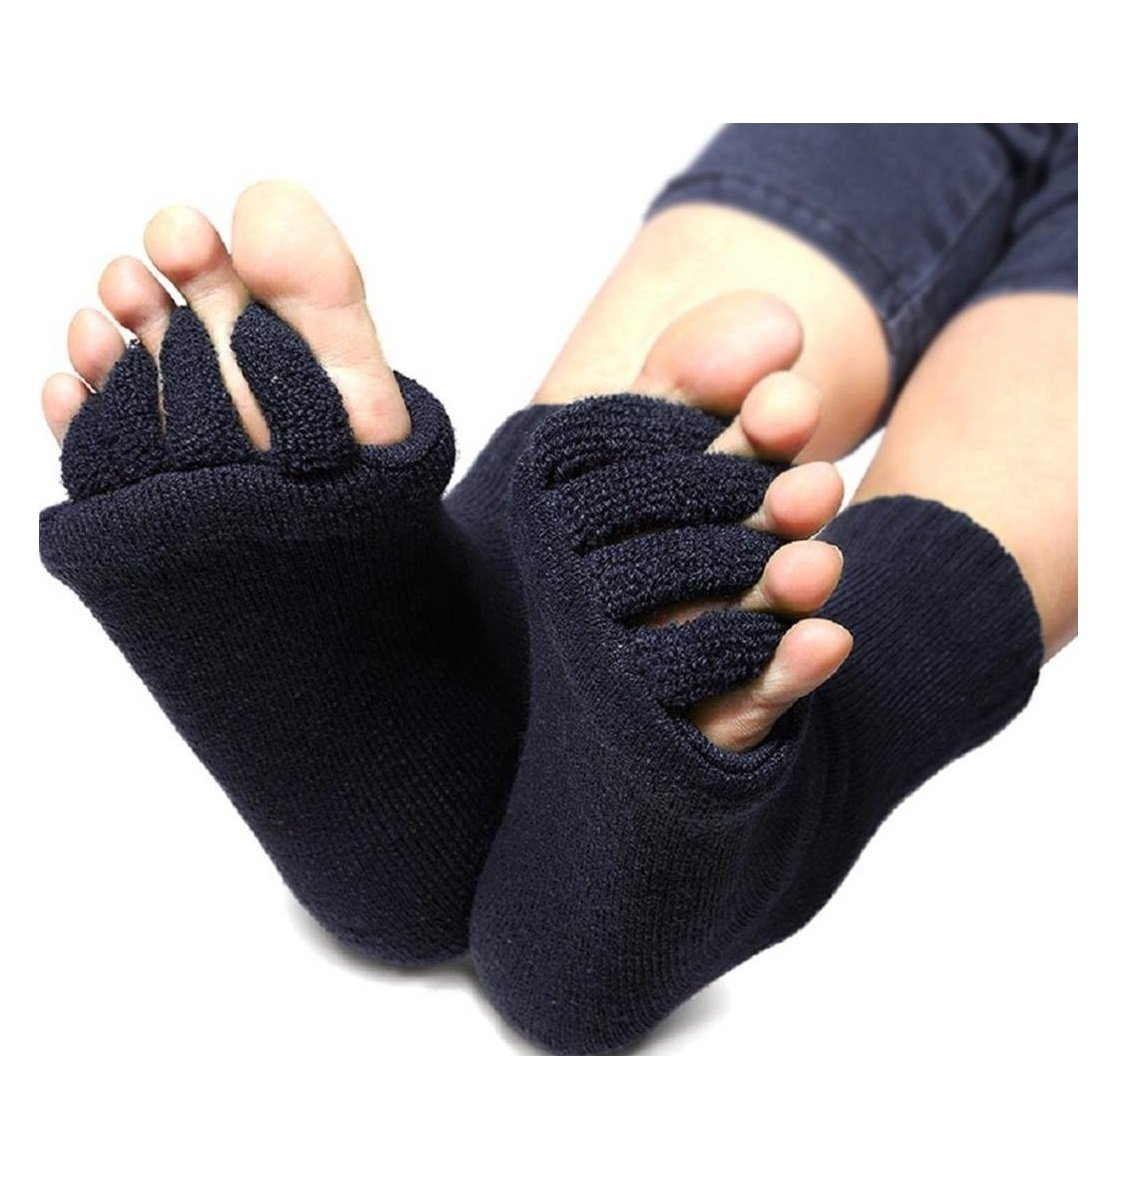 DevsWear Alignment Socks Open Five Toes Separator Toe Spacer Relaxing Comfort Tendon Pain Relief Comfy Foot Sock Yoga Gym Pedicure (Black - 1 Pair) by DevsWear